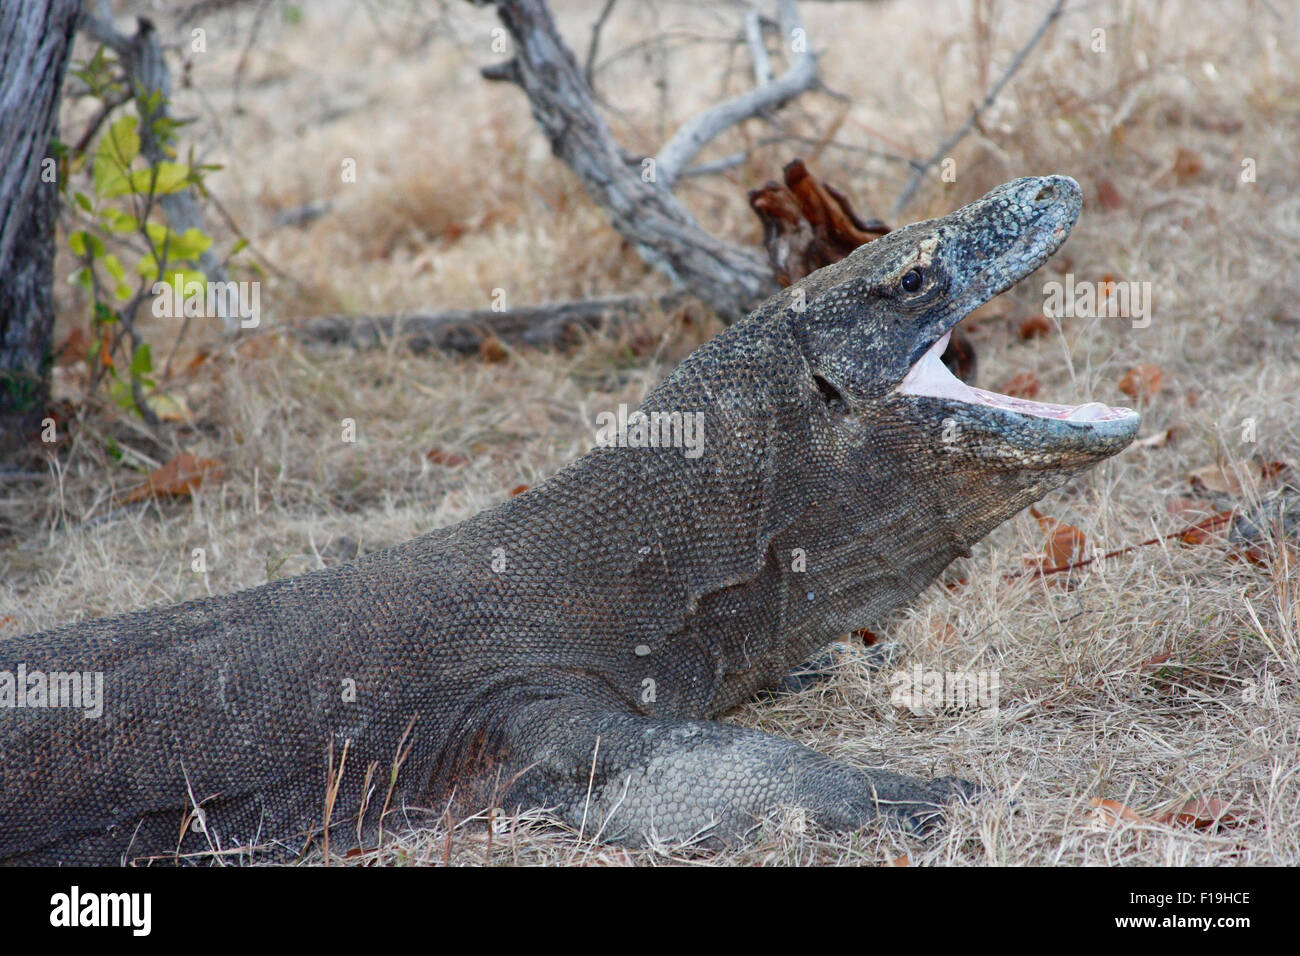 px42408-D. Komodo Dragon (Varanus komodensis), world's largest lizard. Saliva is full of bacteria which can - Stock Image